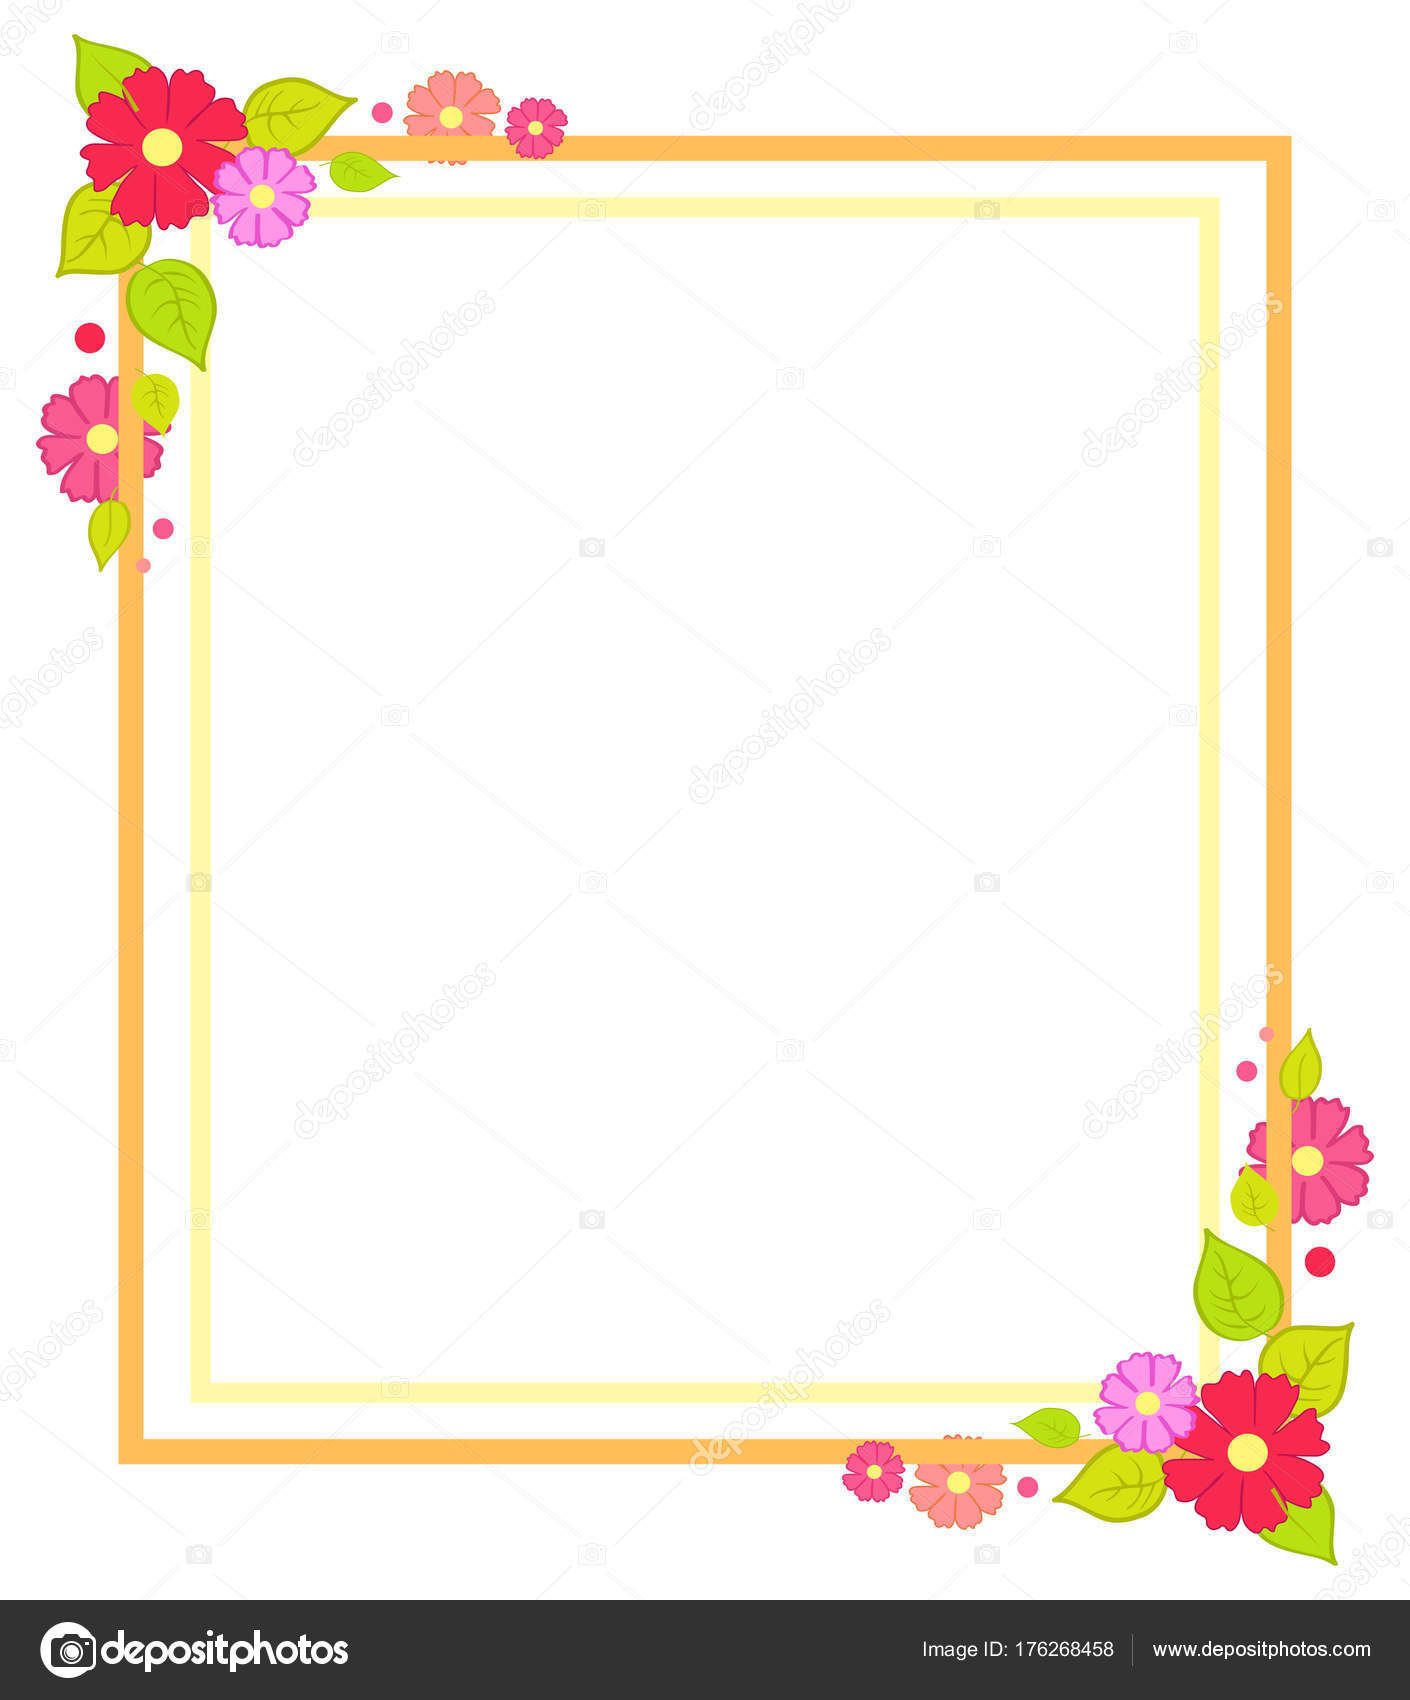 Frame with Flowers Summer or Spring Season Concept — Stock Vector ...